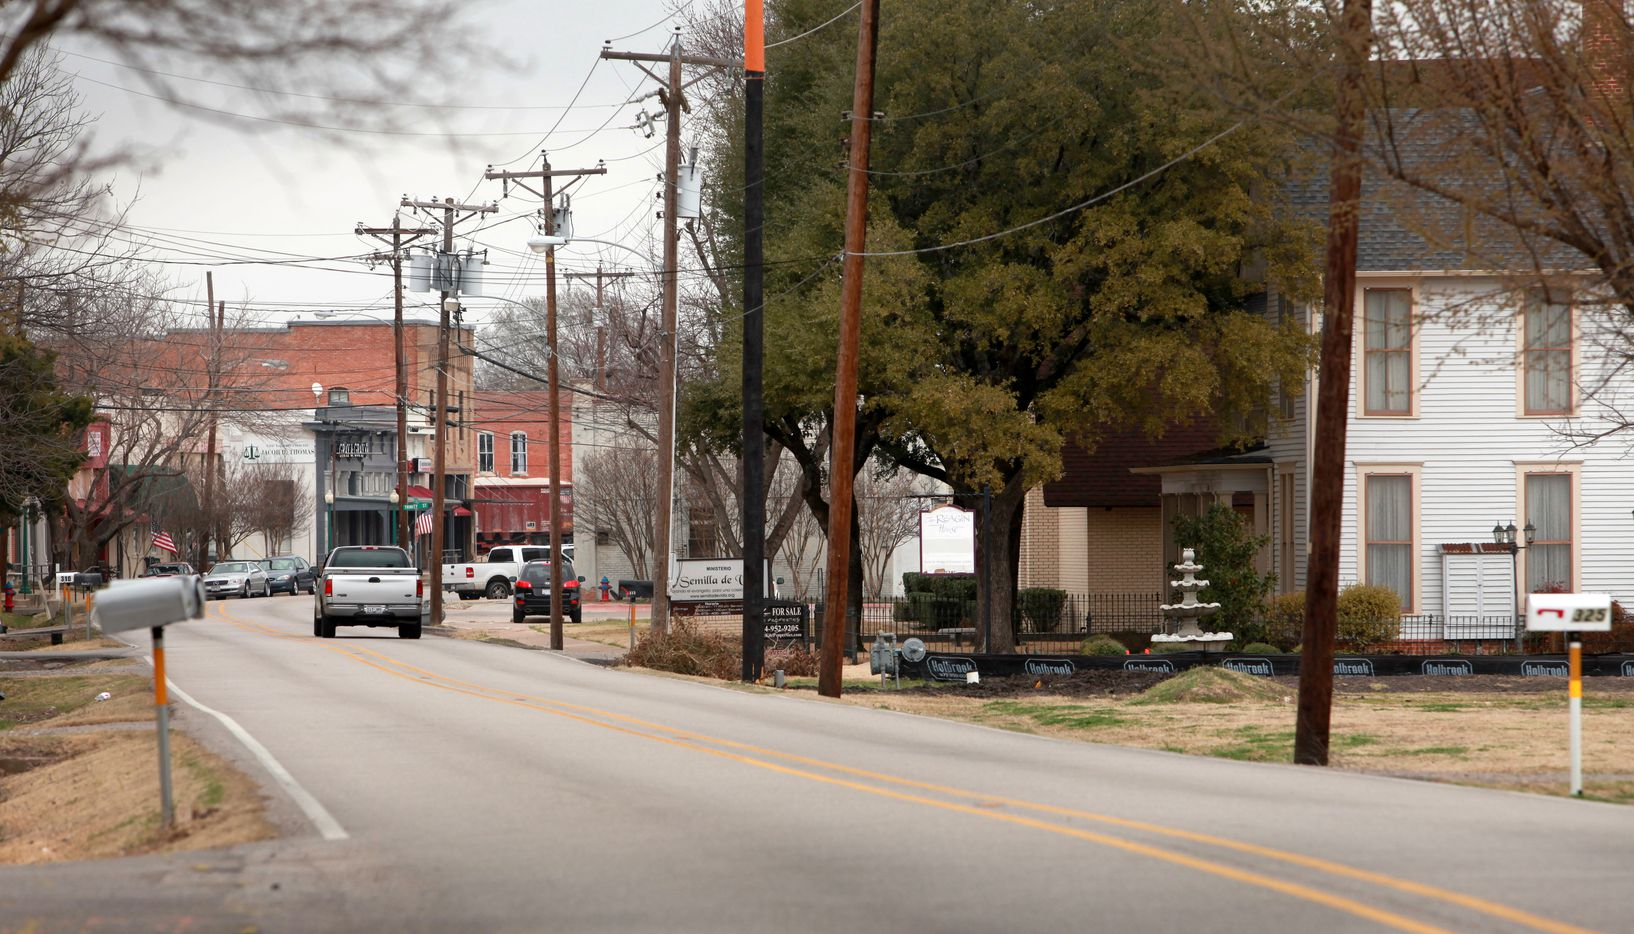 South Bois D'Arc Street in Forney, Texas looking north toward downtown in February, 2011.